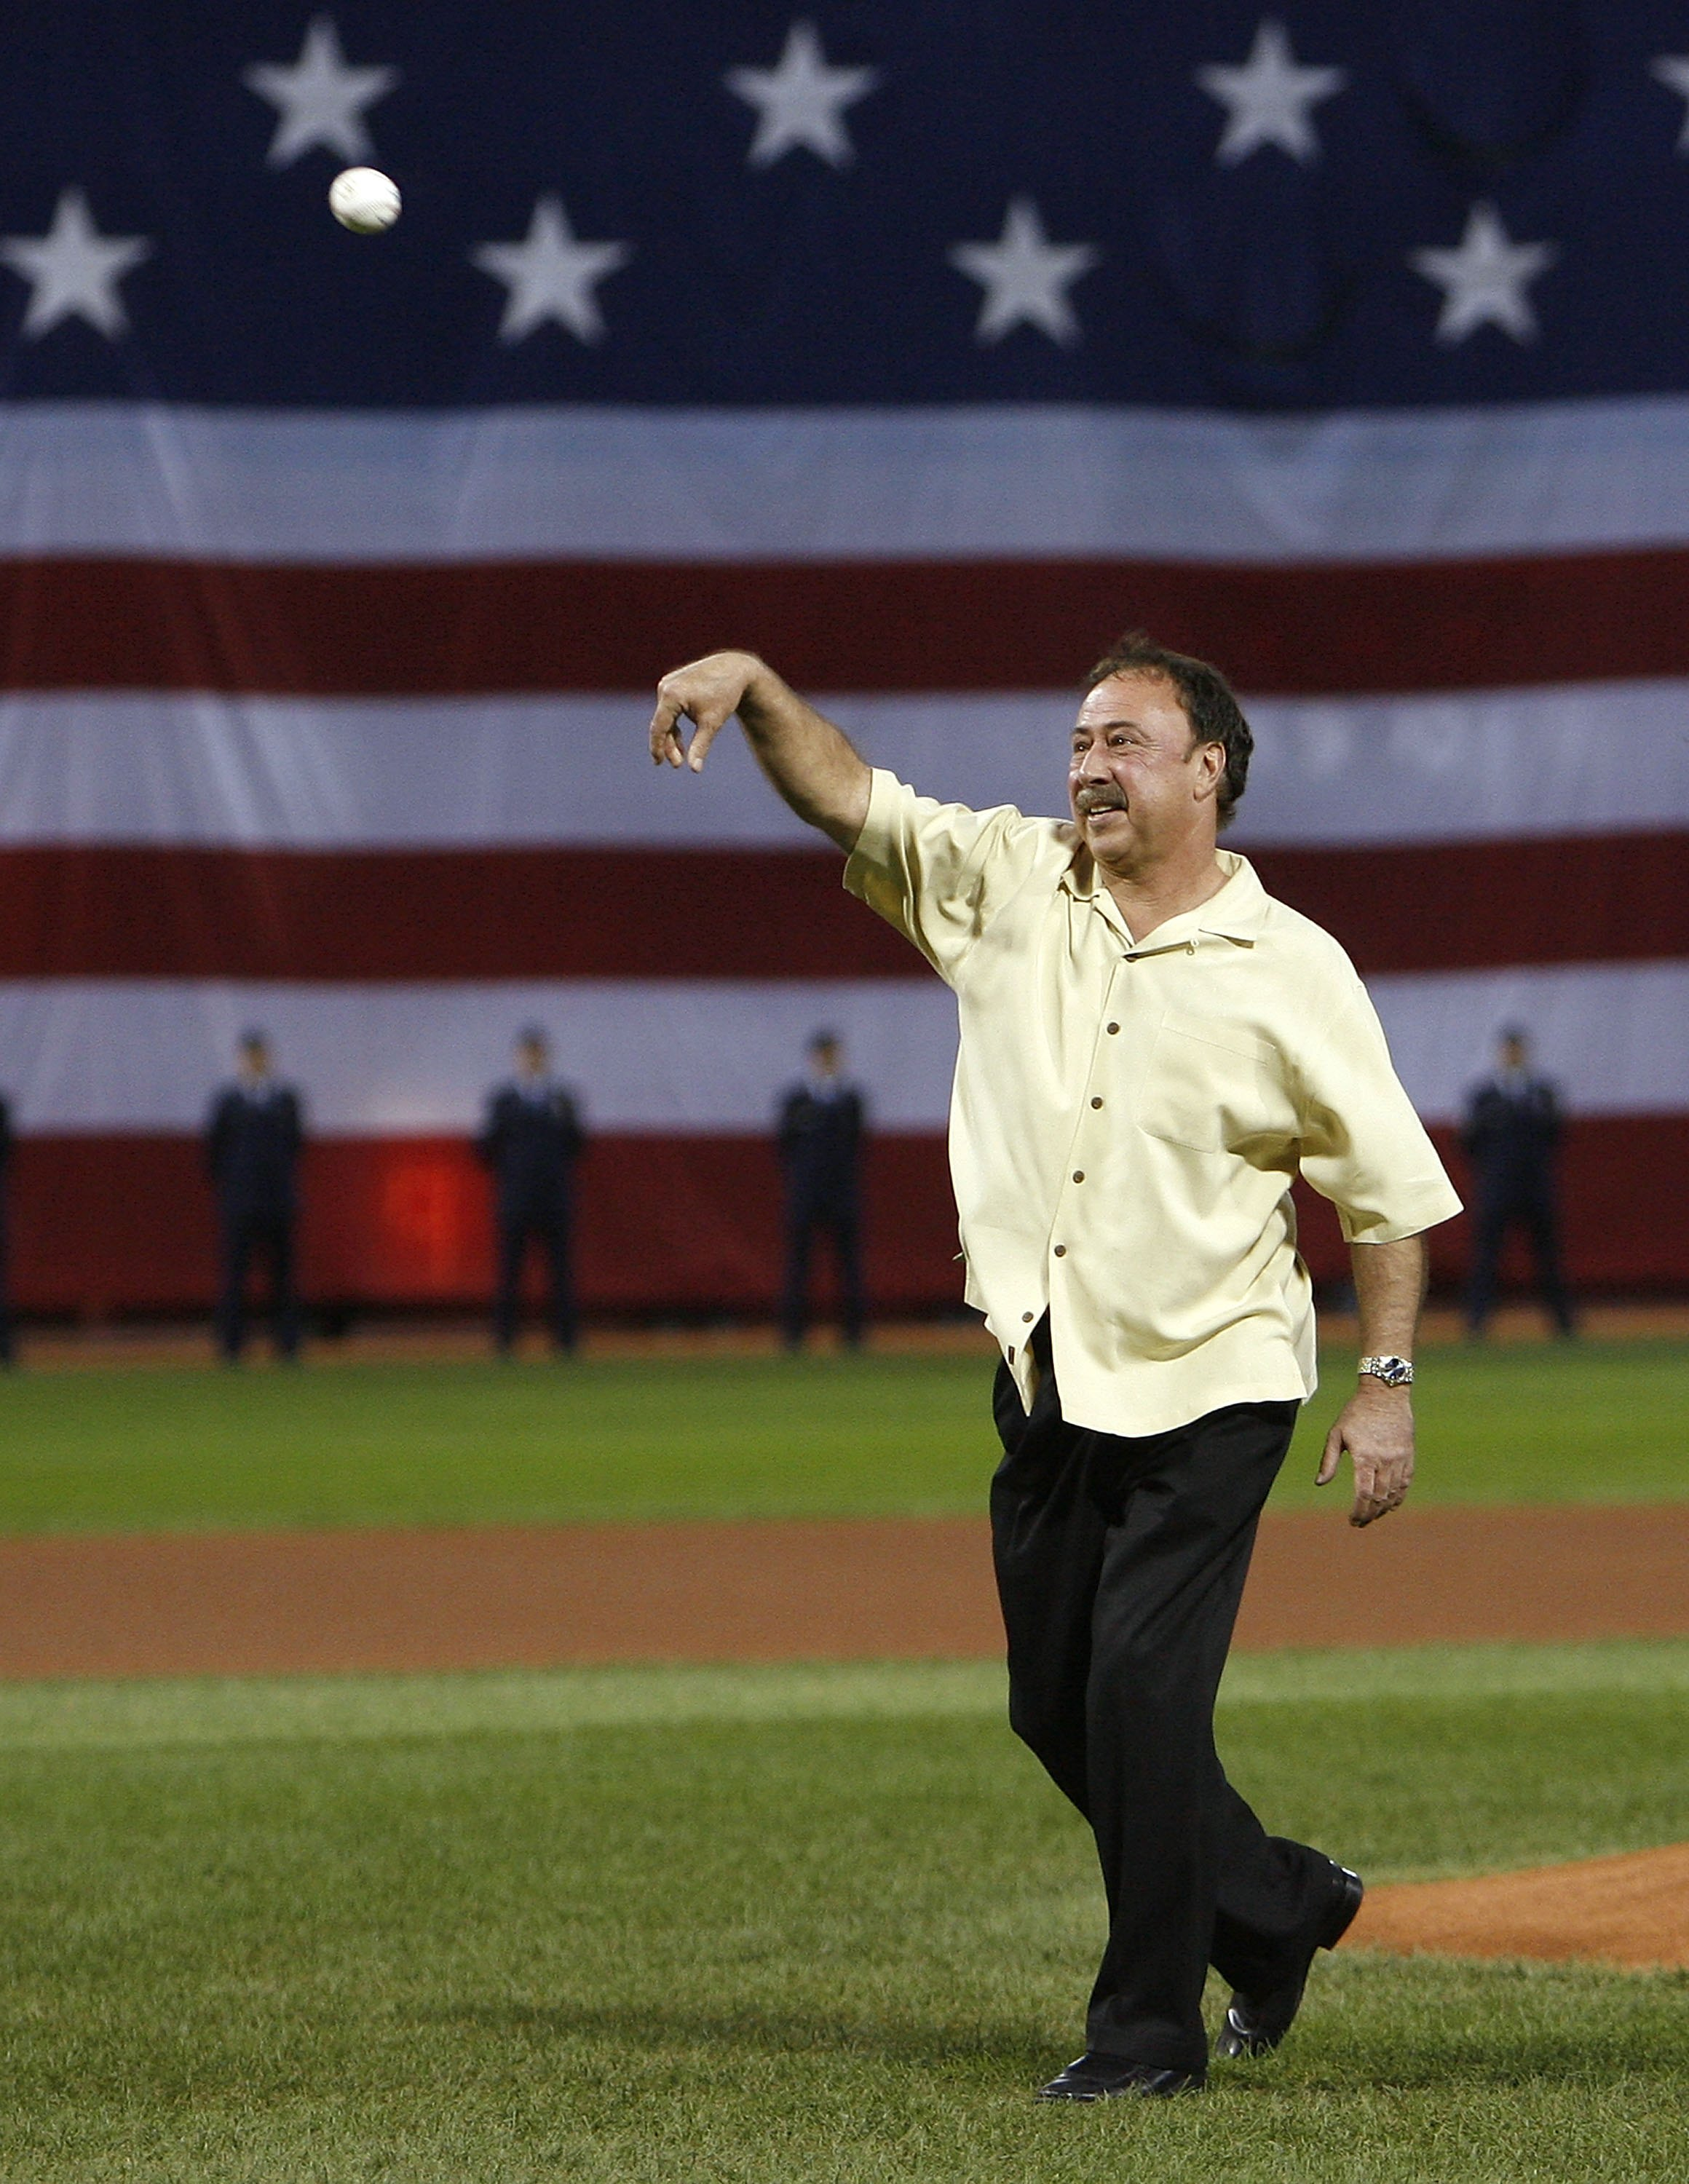 BOSTON - OCTOBER 03:  Former Red Sox second baseman Jerry Remy throws out the first pitch before the Boston Red Sox and Los Angeles Angels meet for Game one of the American League Division Series on October 3, 2007 at Fenway Park in Boston, Massachusetts.